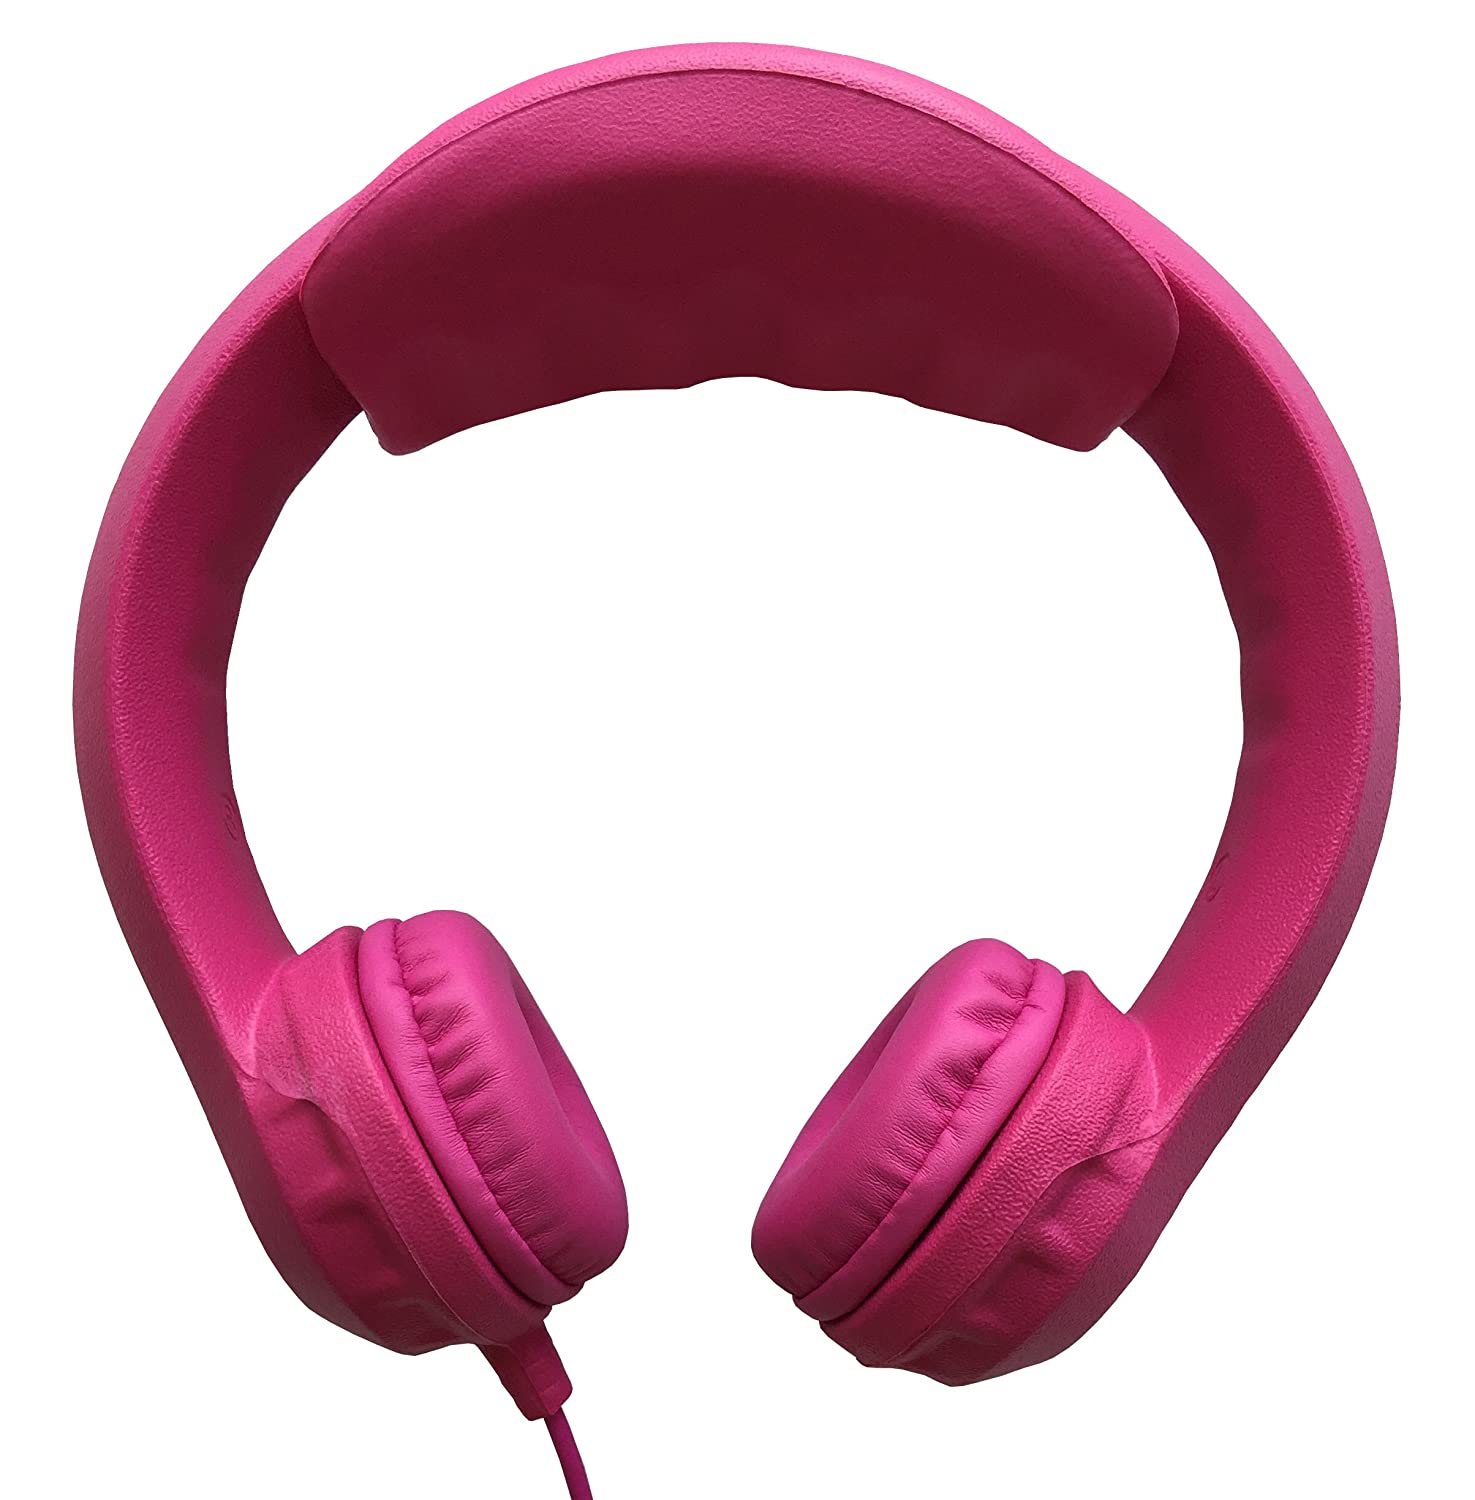 Kidrox Wired Kids Headphones, Volume Limited with Padded Cushions and Removable Size-Adjuster